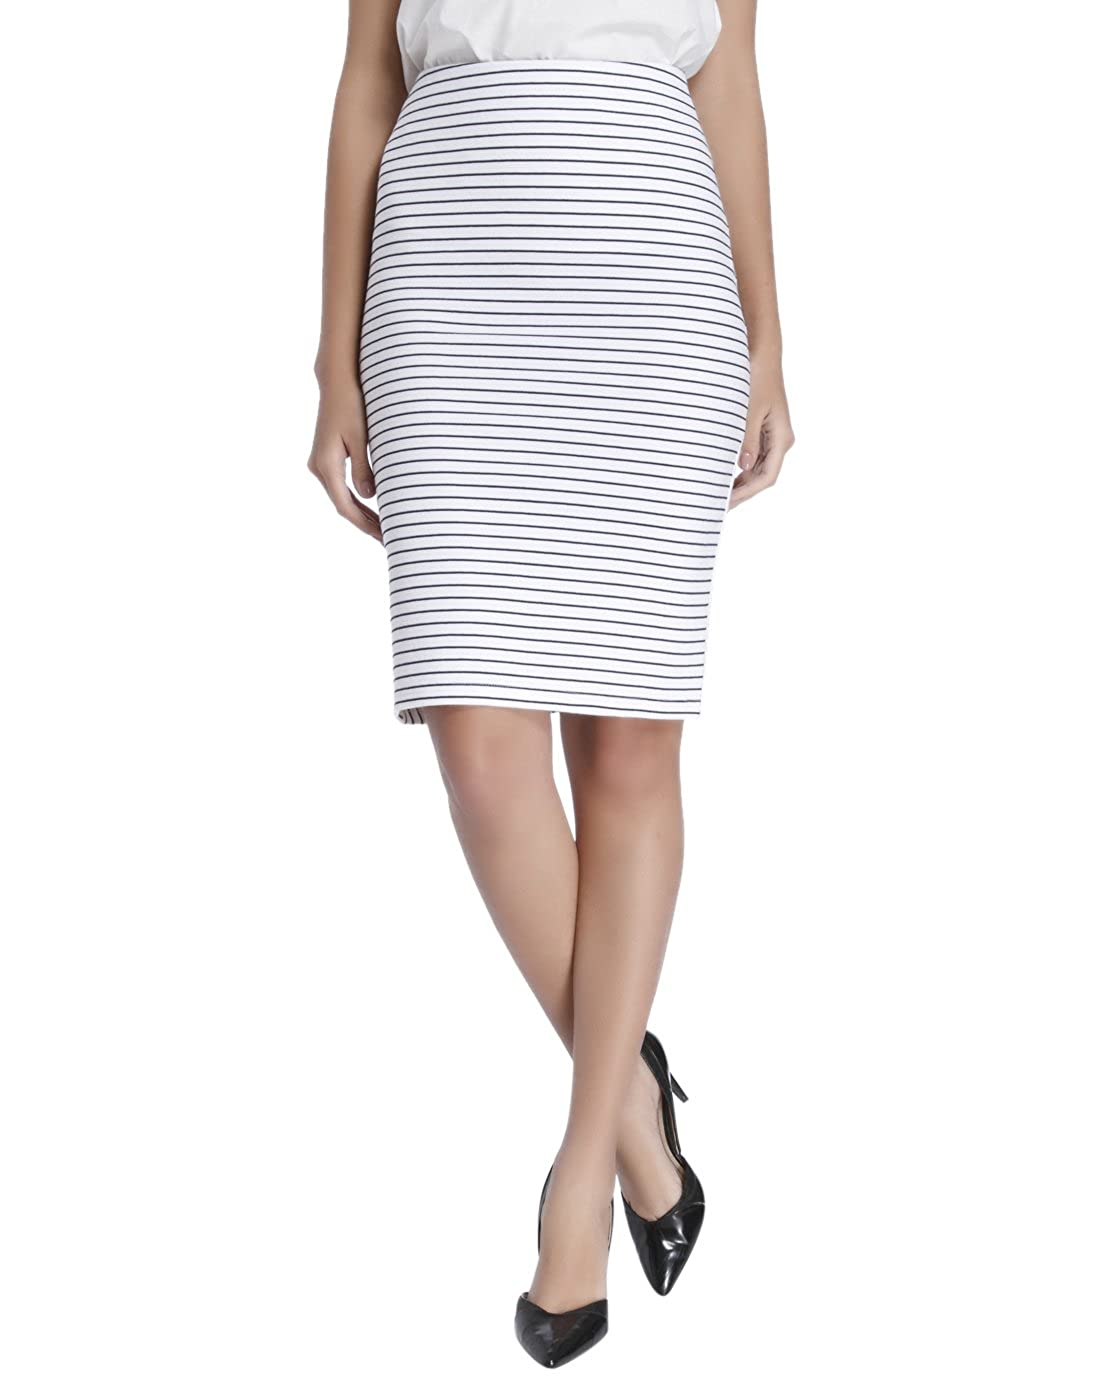 VERO MODA Women's Body Con Skirt